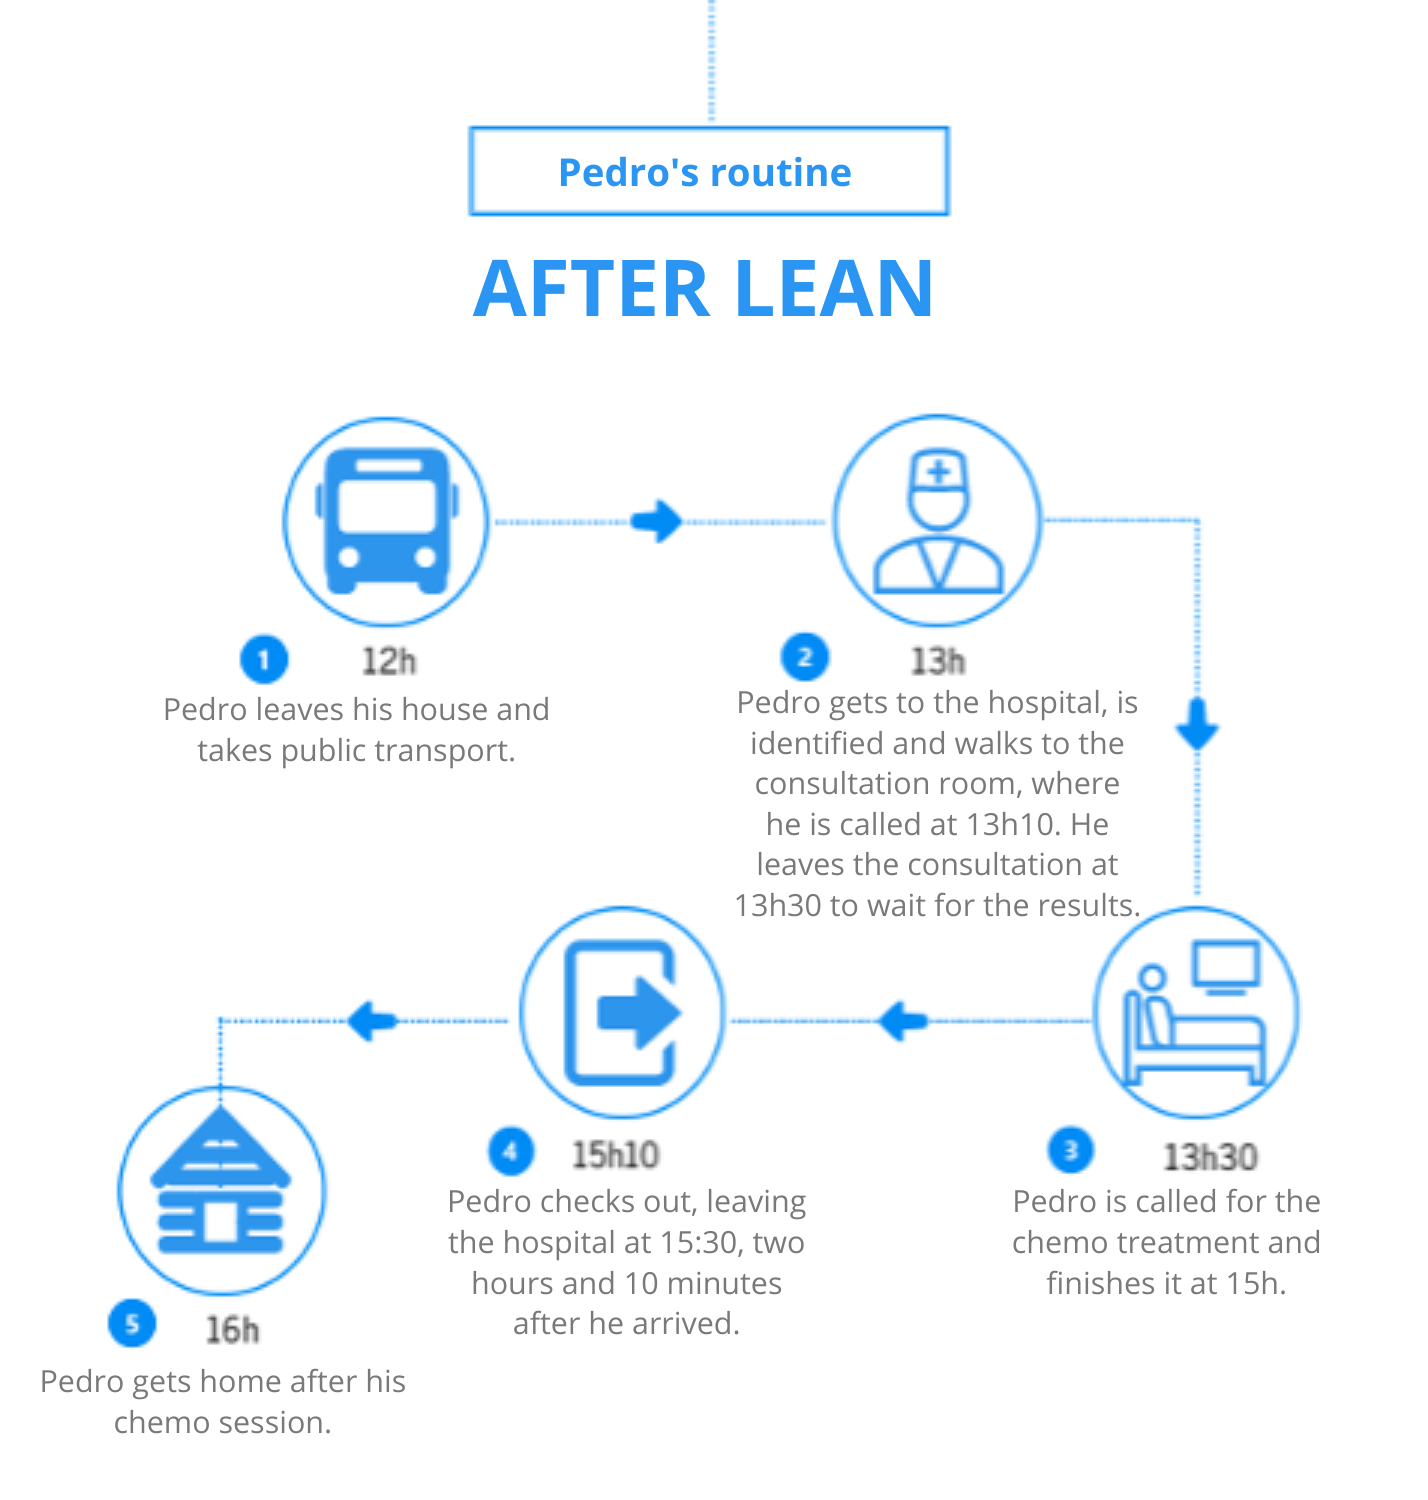 Chemotherapy process after lean implementation